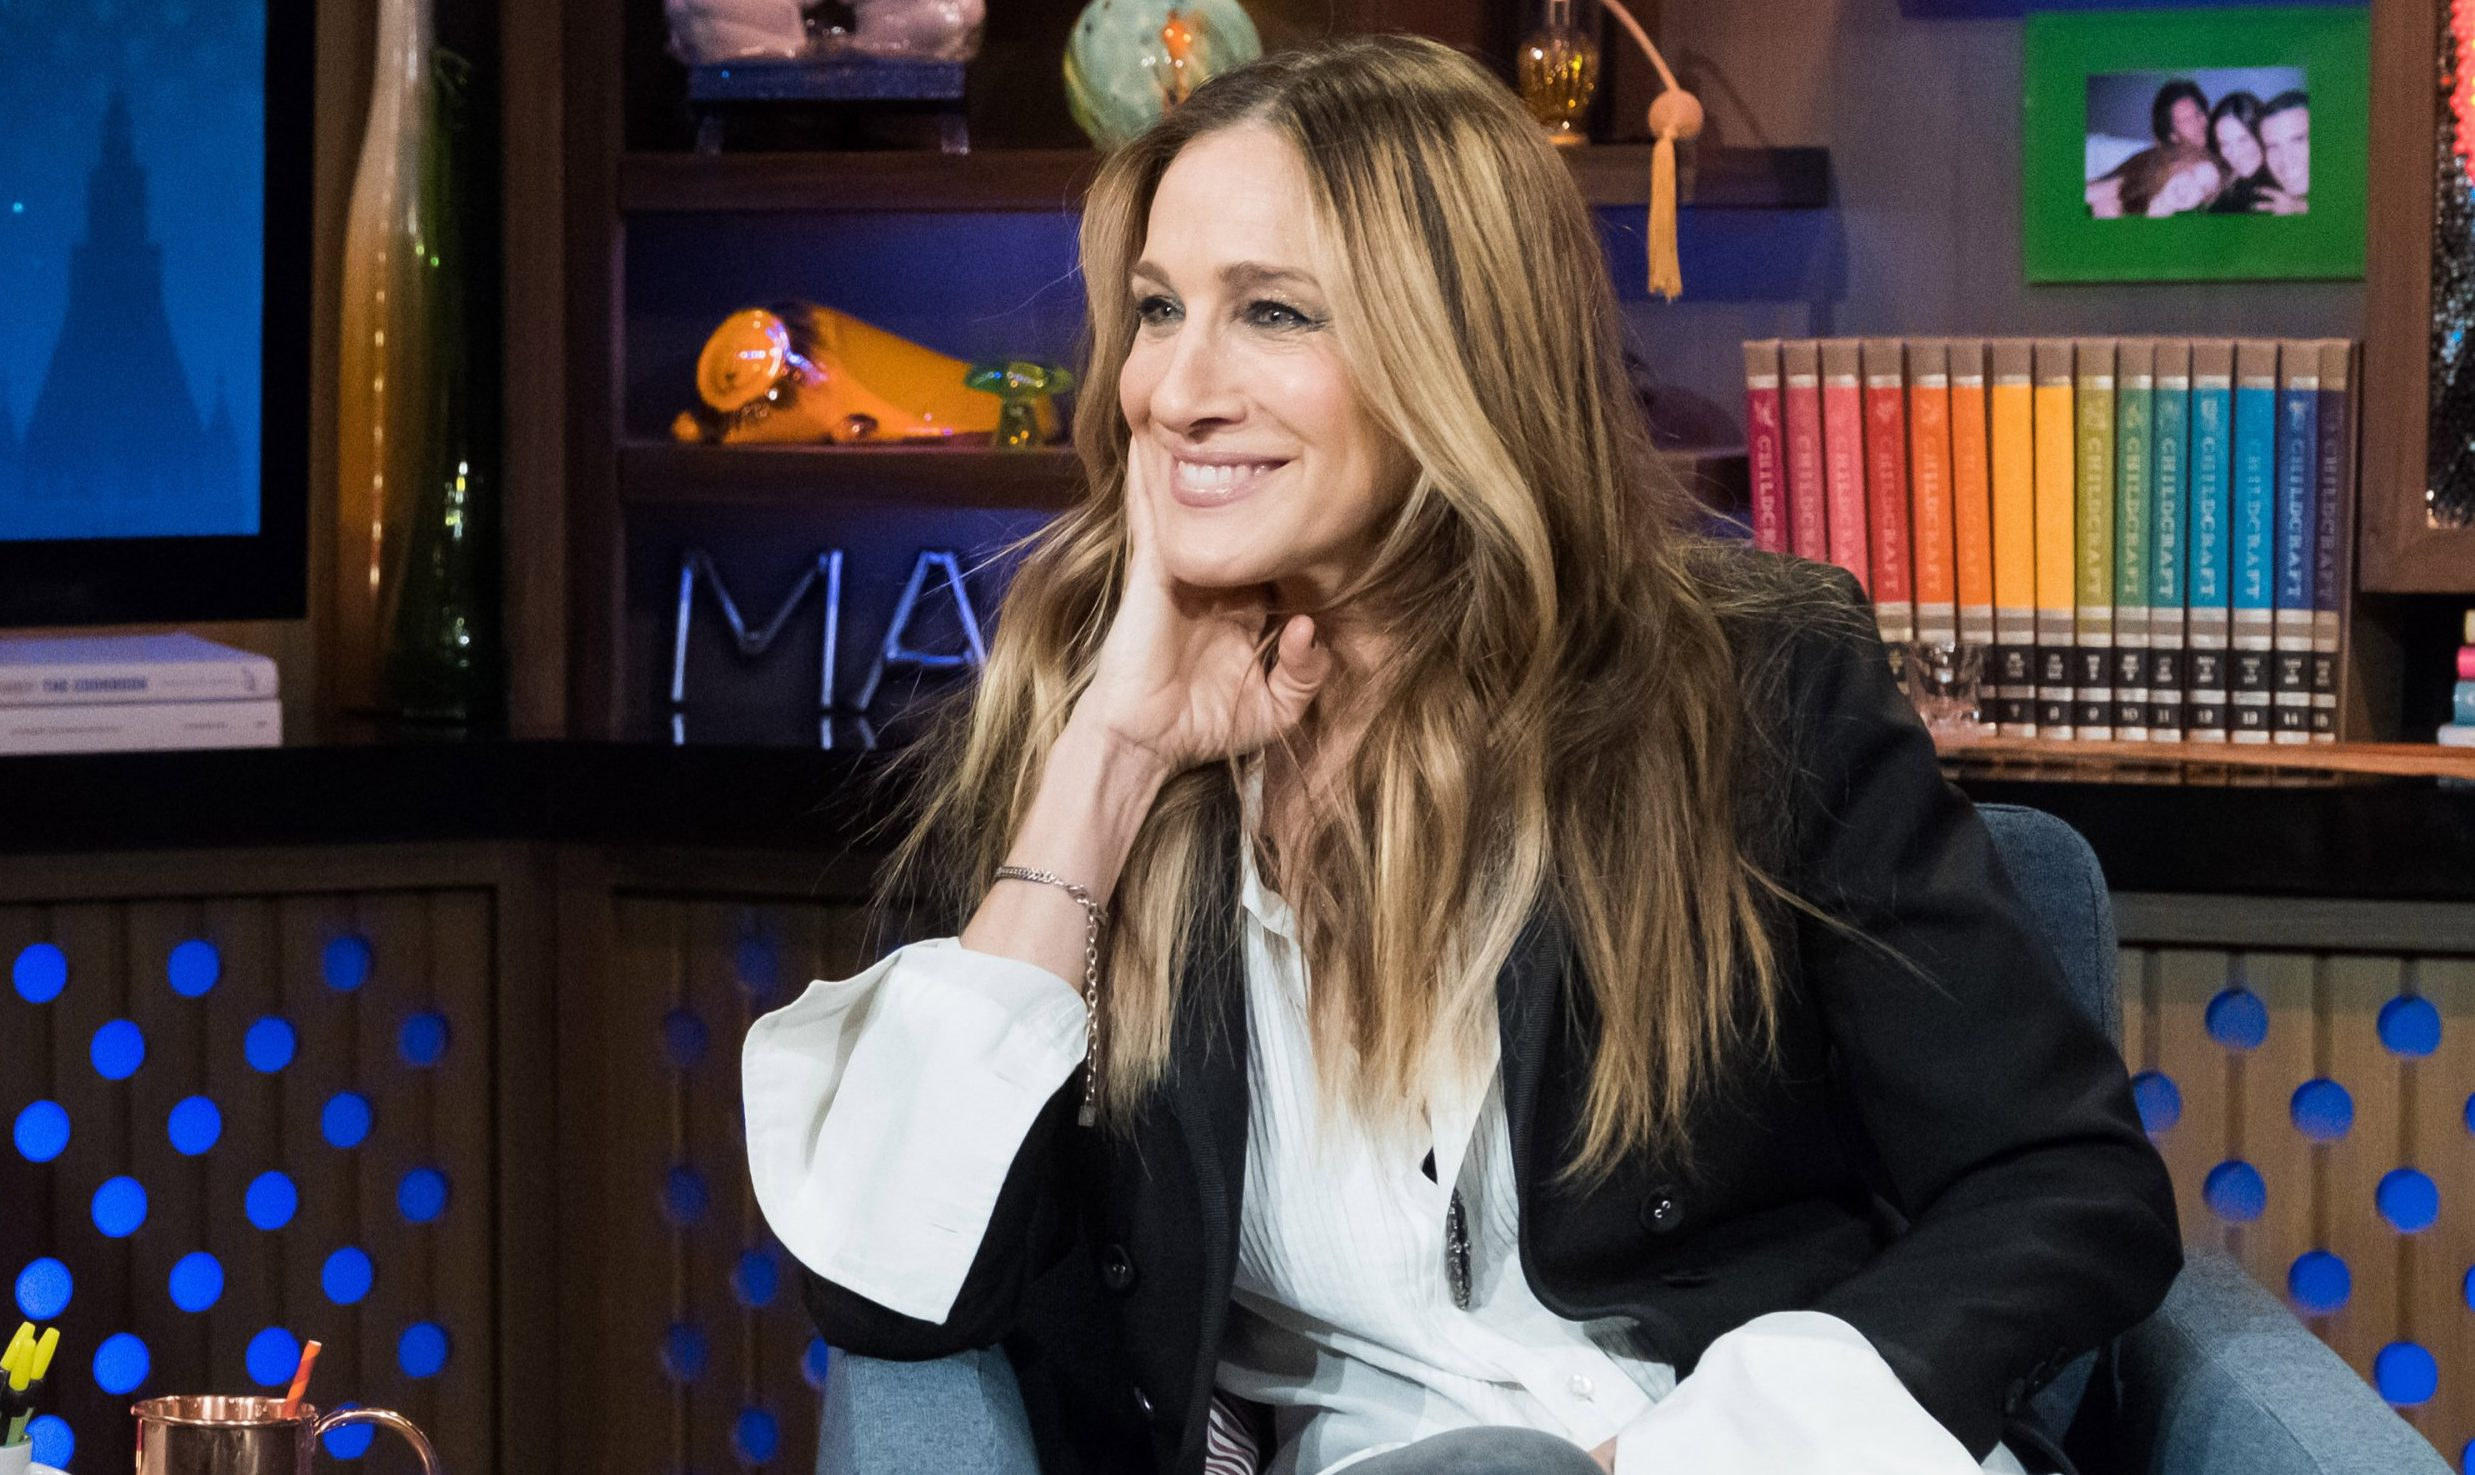 Sarah Jessica Parker 'left sobbing' when film producers tried forcing her to do nude scene